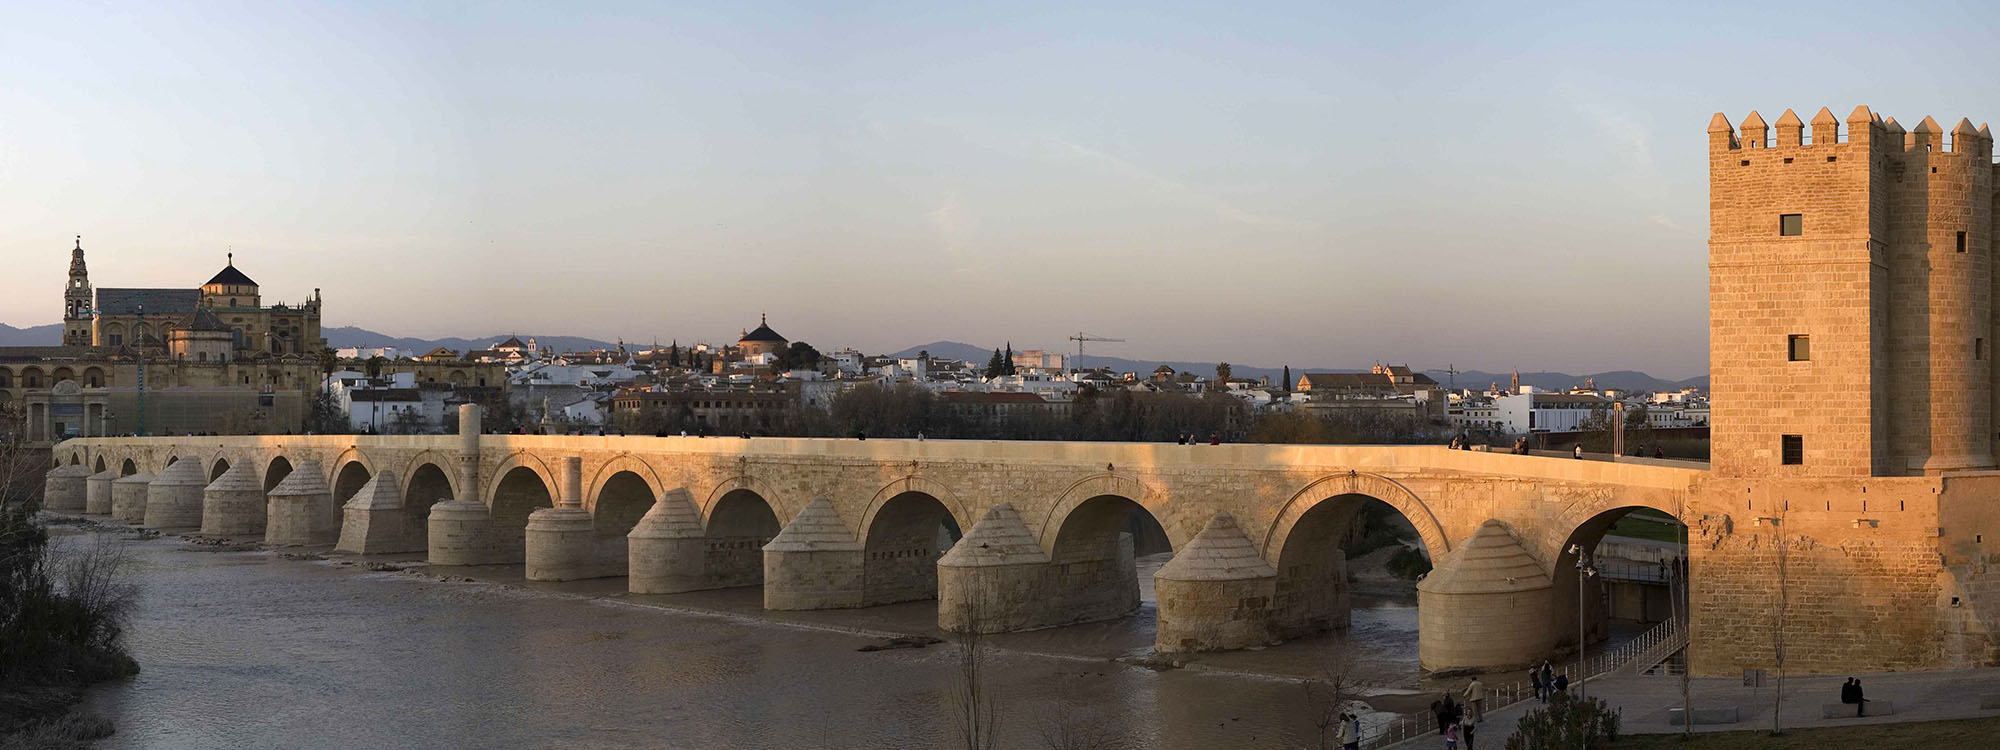 DAY 5: CORDOBA AND THE SPLENDOR OF THE CALIPHATE